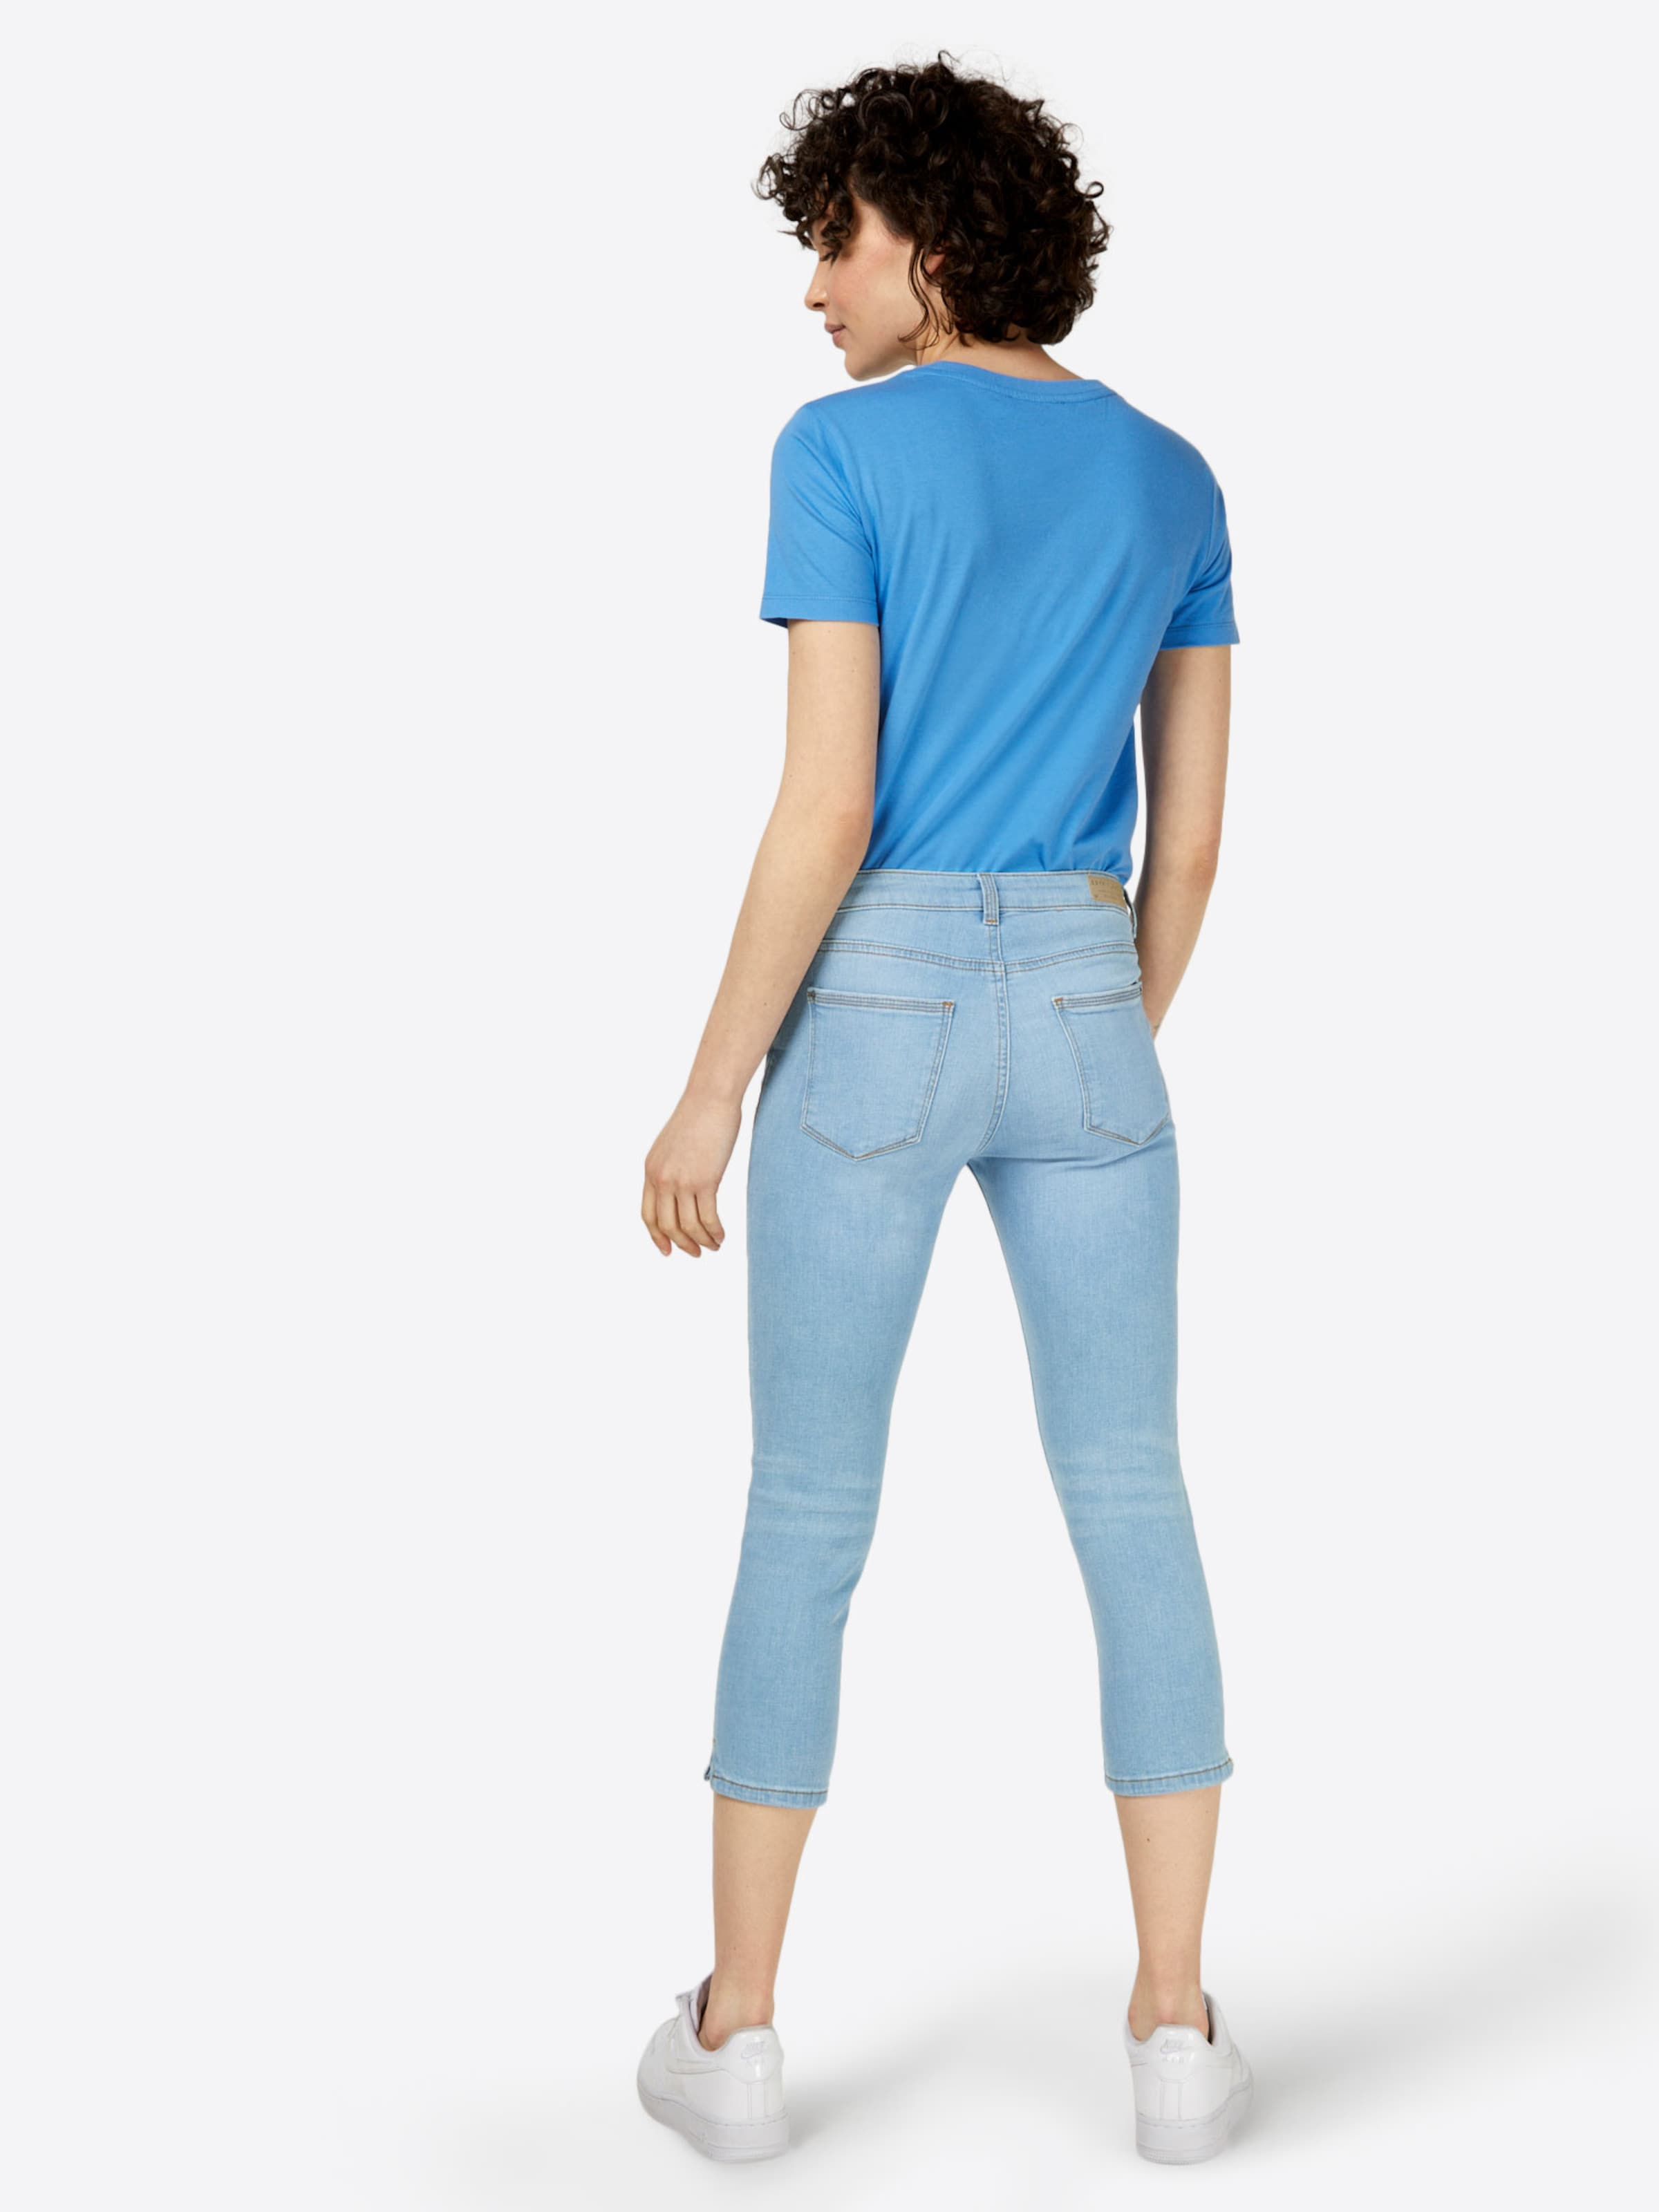 Jeans Jeans In Esprit Jeans Jeans In Lichtblauw Lichtblauw Lichtblauw In Esprit Esprit Esprit hrstQd